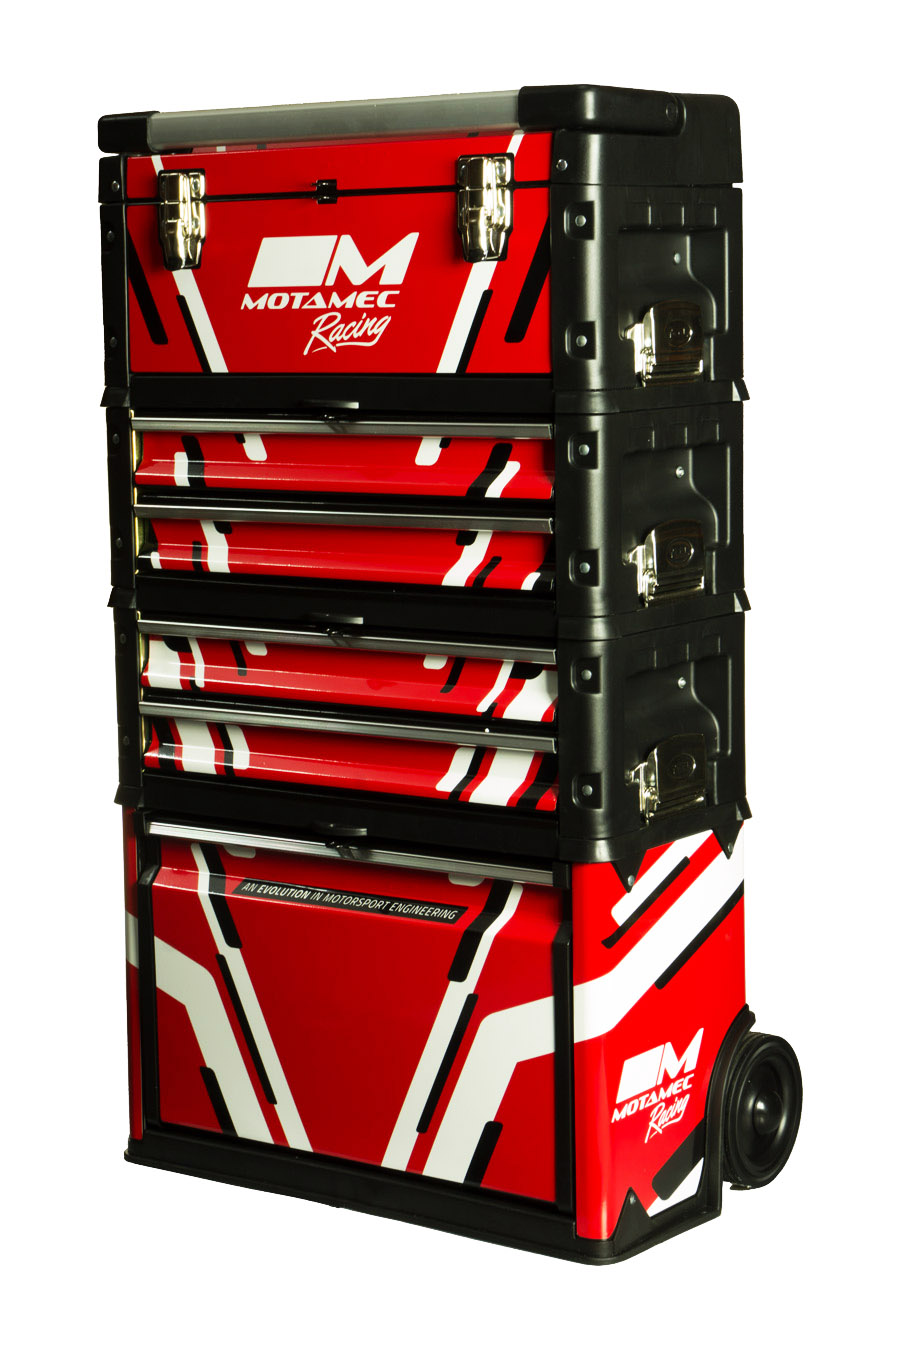 Motamec Racing Red Modular Tool Box Trolley Mobile Cart